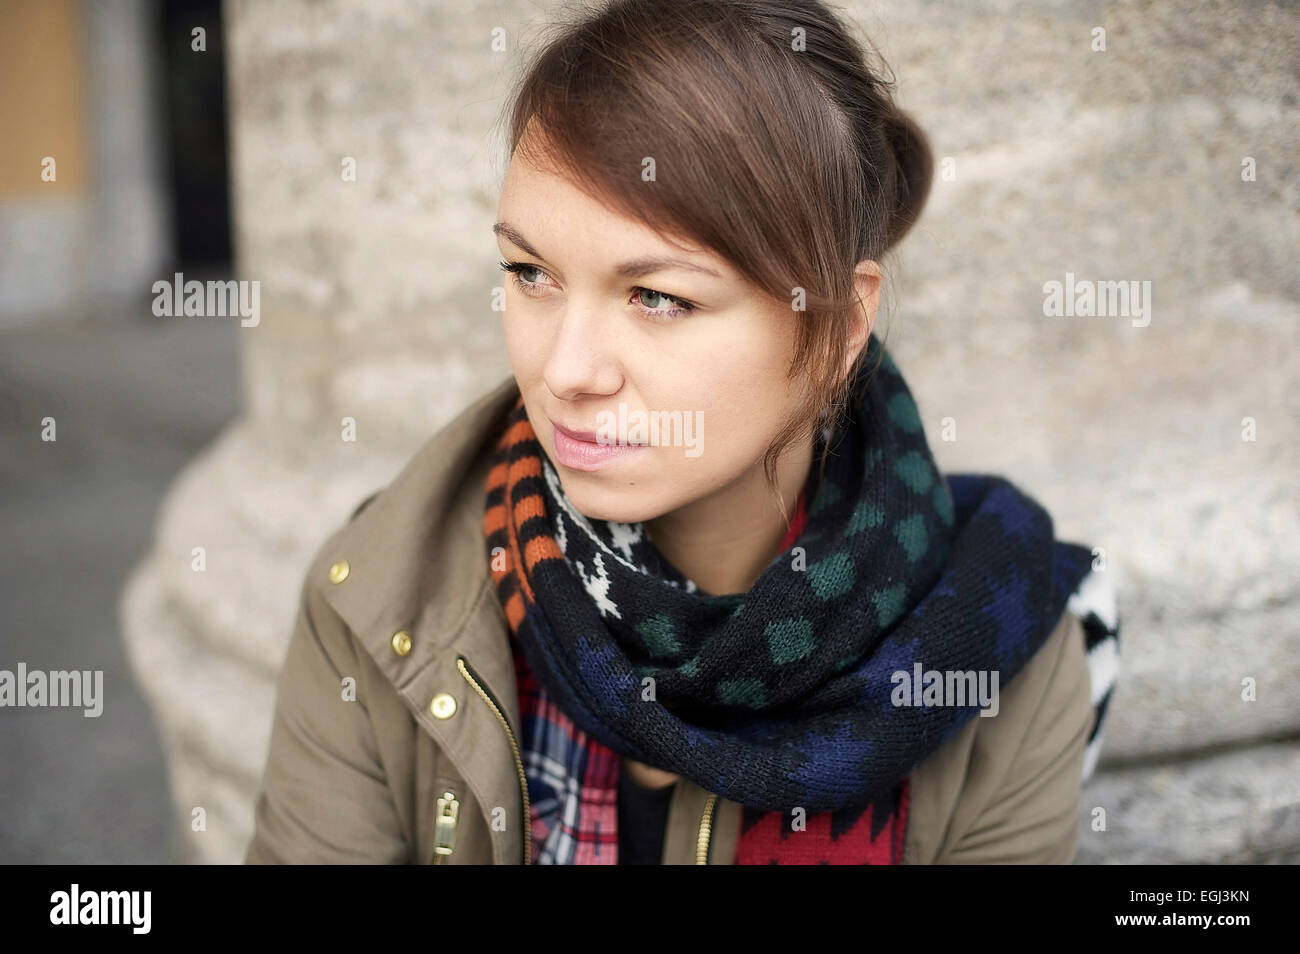 Young woman with plait, - Stock Image